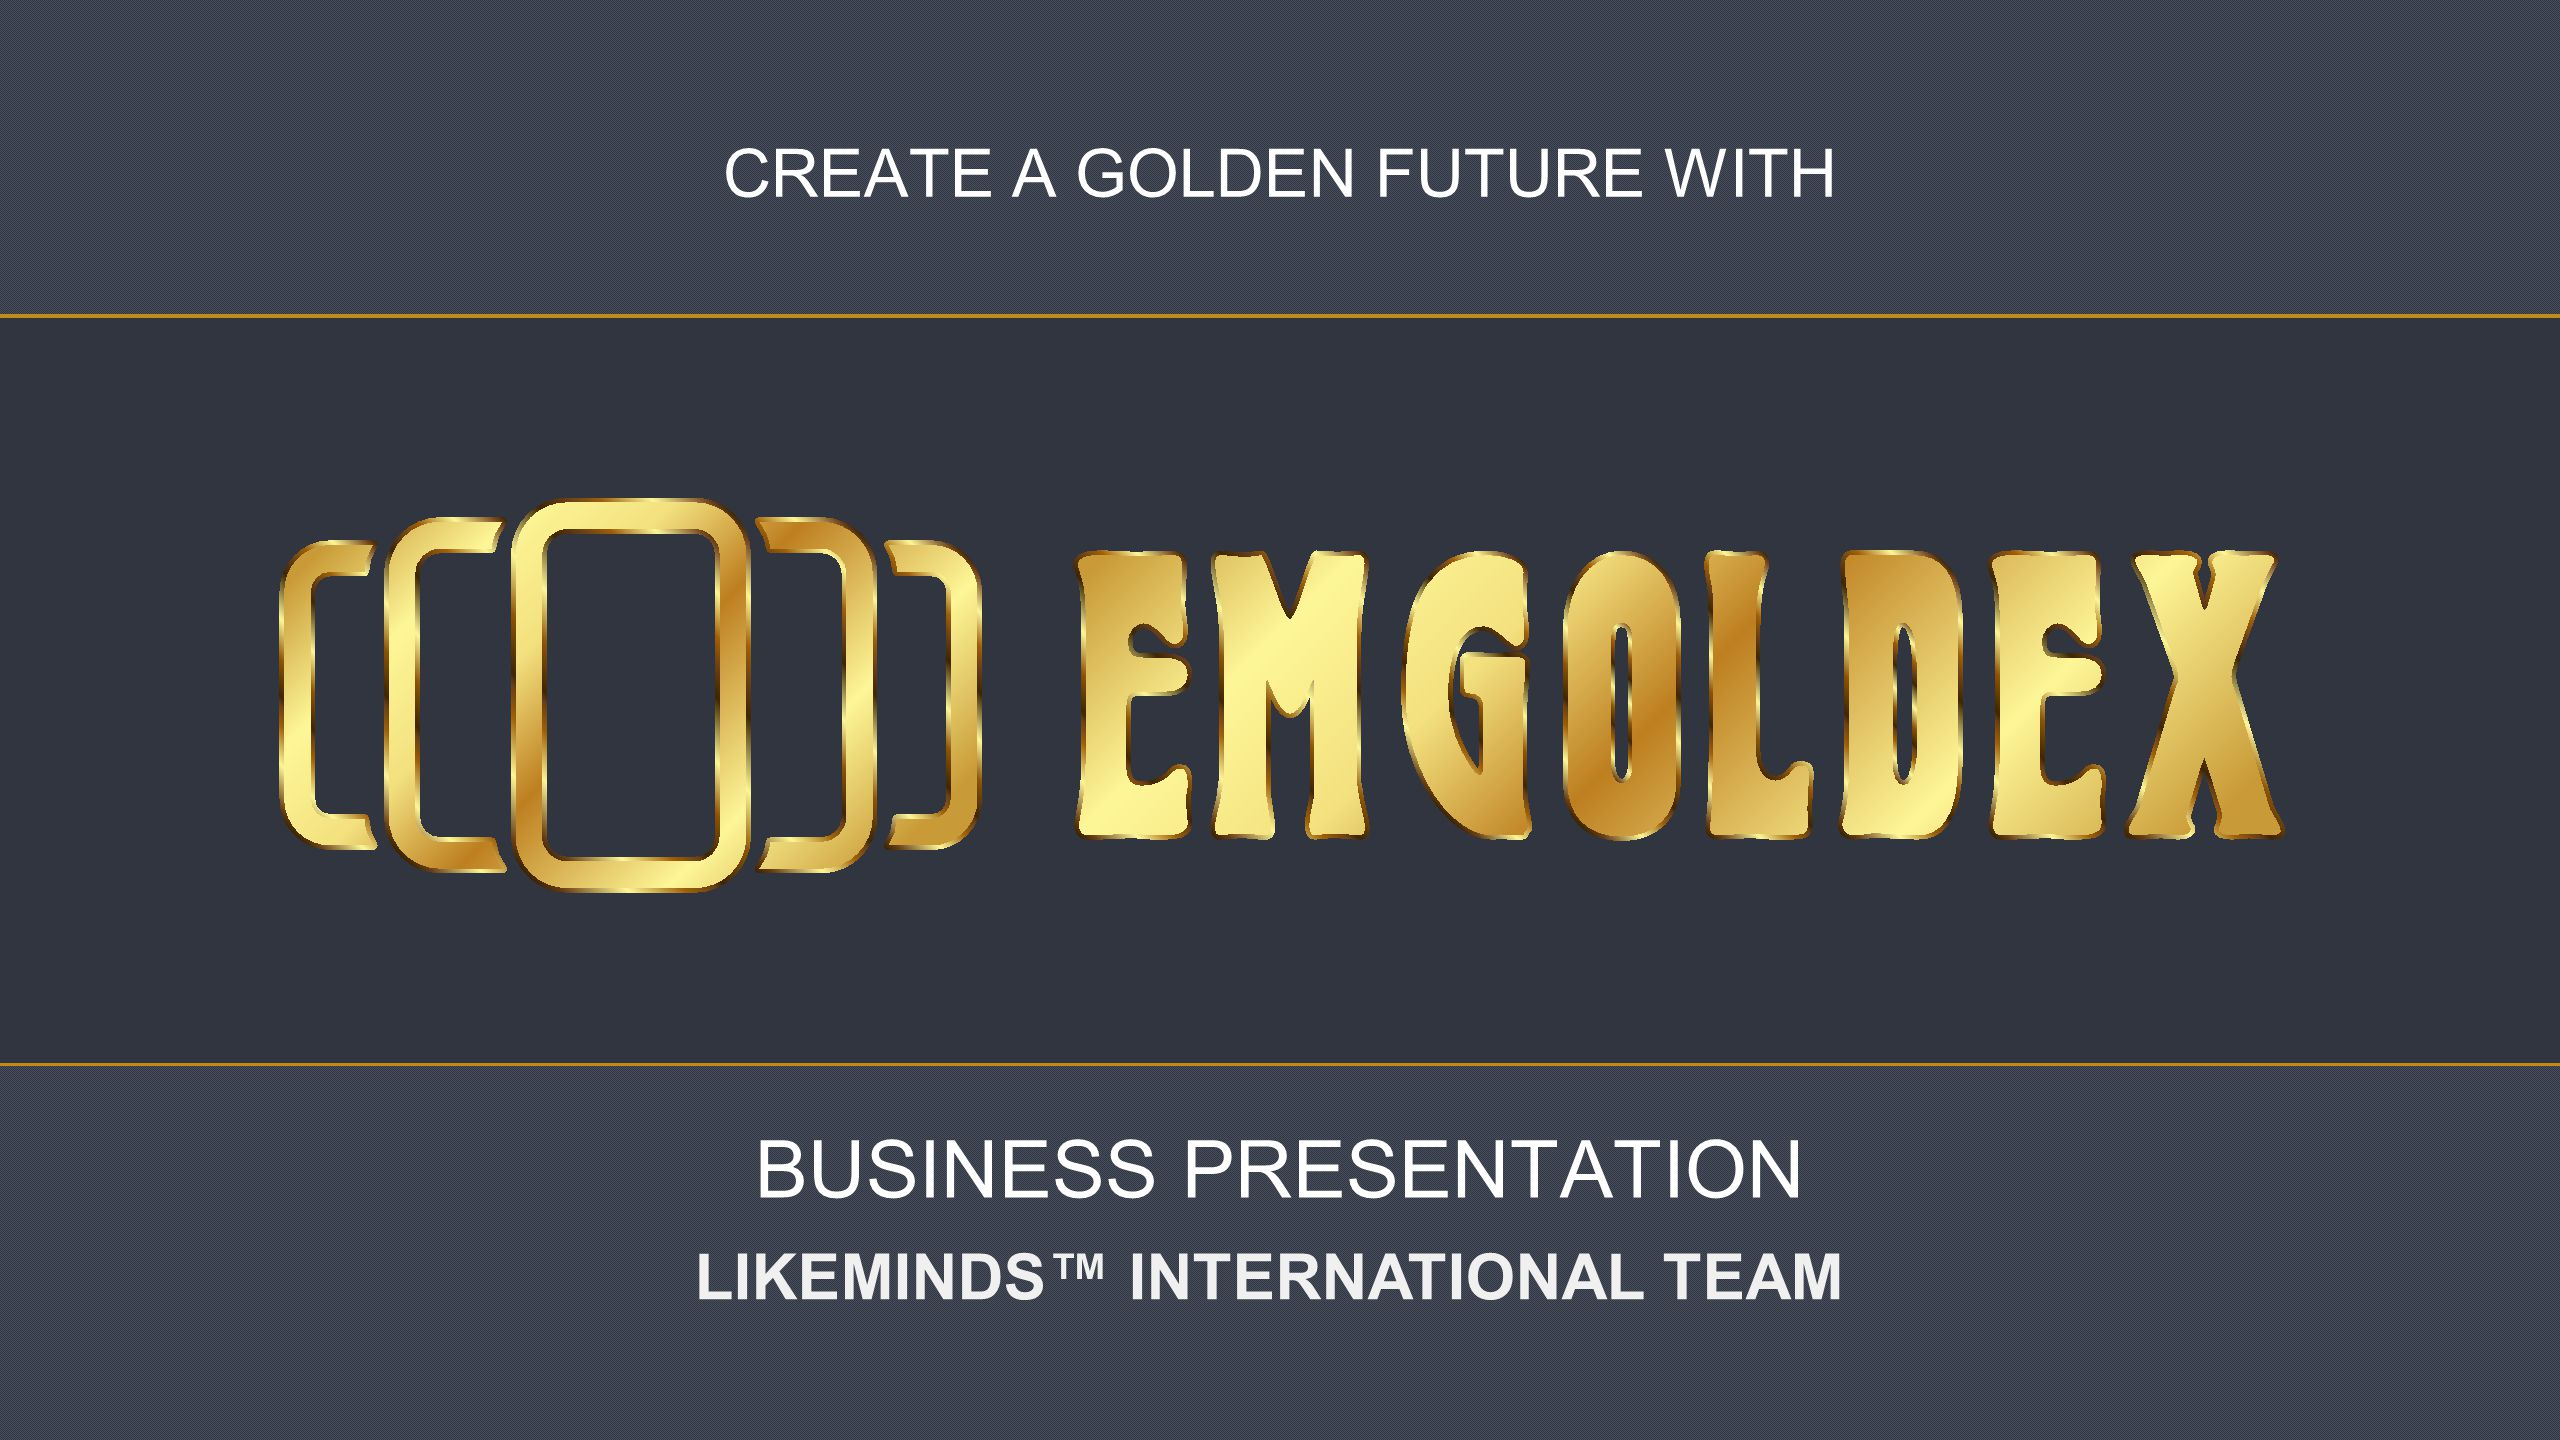 RECEIVE MAXIMUM GOLDEN REWARDS Place your client at level: Level 1 or 2, 1750 credit bonuses for 2 (1750 x 2 = € 3,500) Level 3, 1250 credit bonuses for 2 (1250 x 2 = € 2,500) Level 4, 750 credit bonuses for 2 (750 x 2 = € 1.500) (-7%) Example If you place 1 client when you are on level 1 and 1 client when you are on level 3 you will receive 1.750 + 1.250 = €3.000 - 7% The reward you get from table 1 you will get from all tables UNLESS you place a New client on your 2nd table at level 1 or 2 - after that you will always receive €3.500 - 7% €3.255